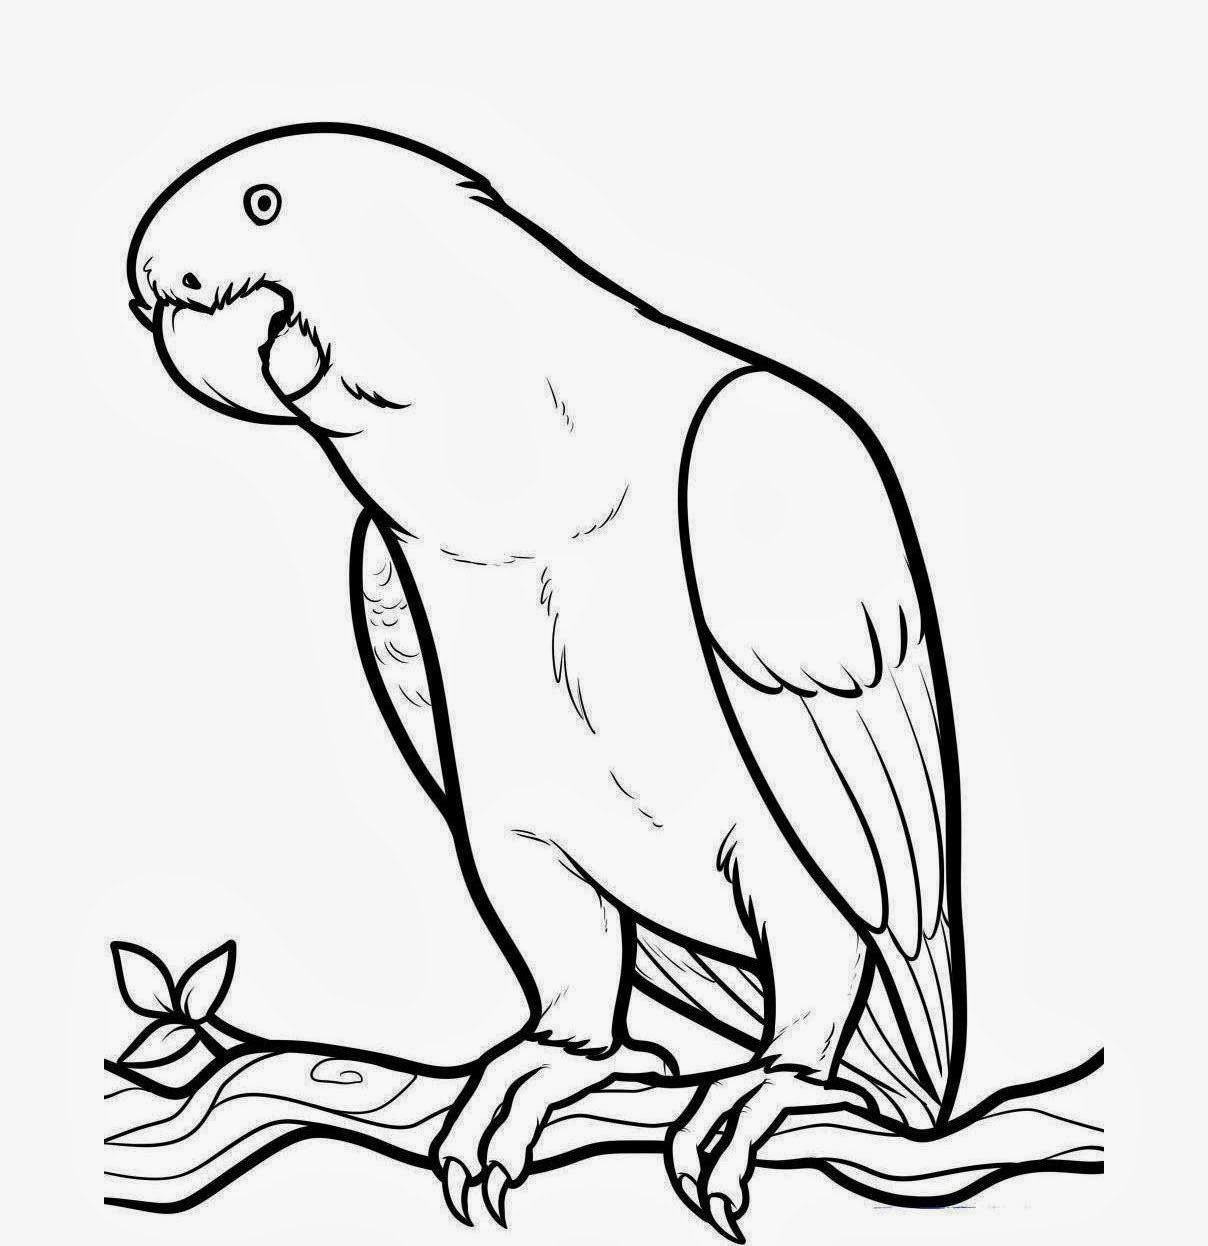 1208x1246 Outline Drawings For Kids Parrot Bird Drawing At Getdrawings Free